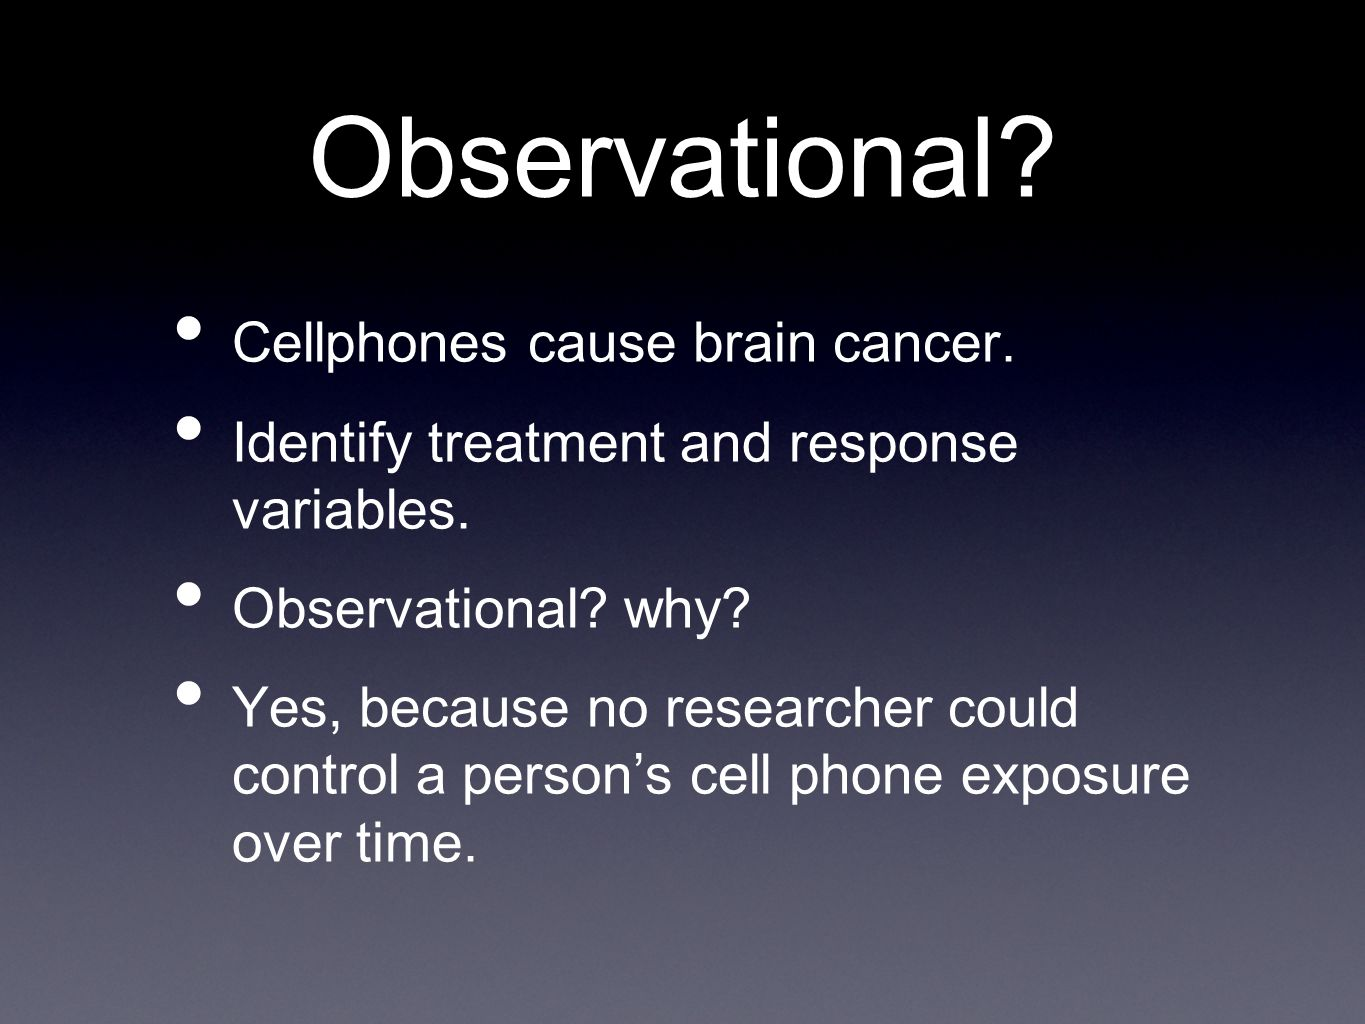 Observational. Cellphones cause brain cancer. Identify treatment and response variables.